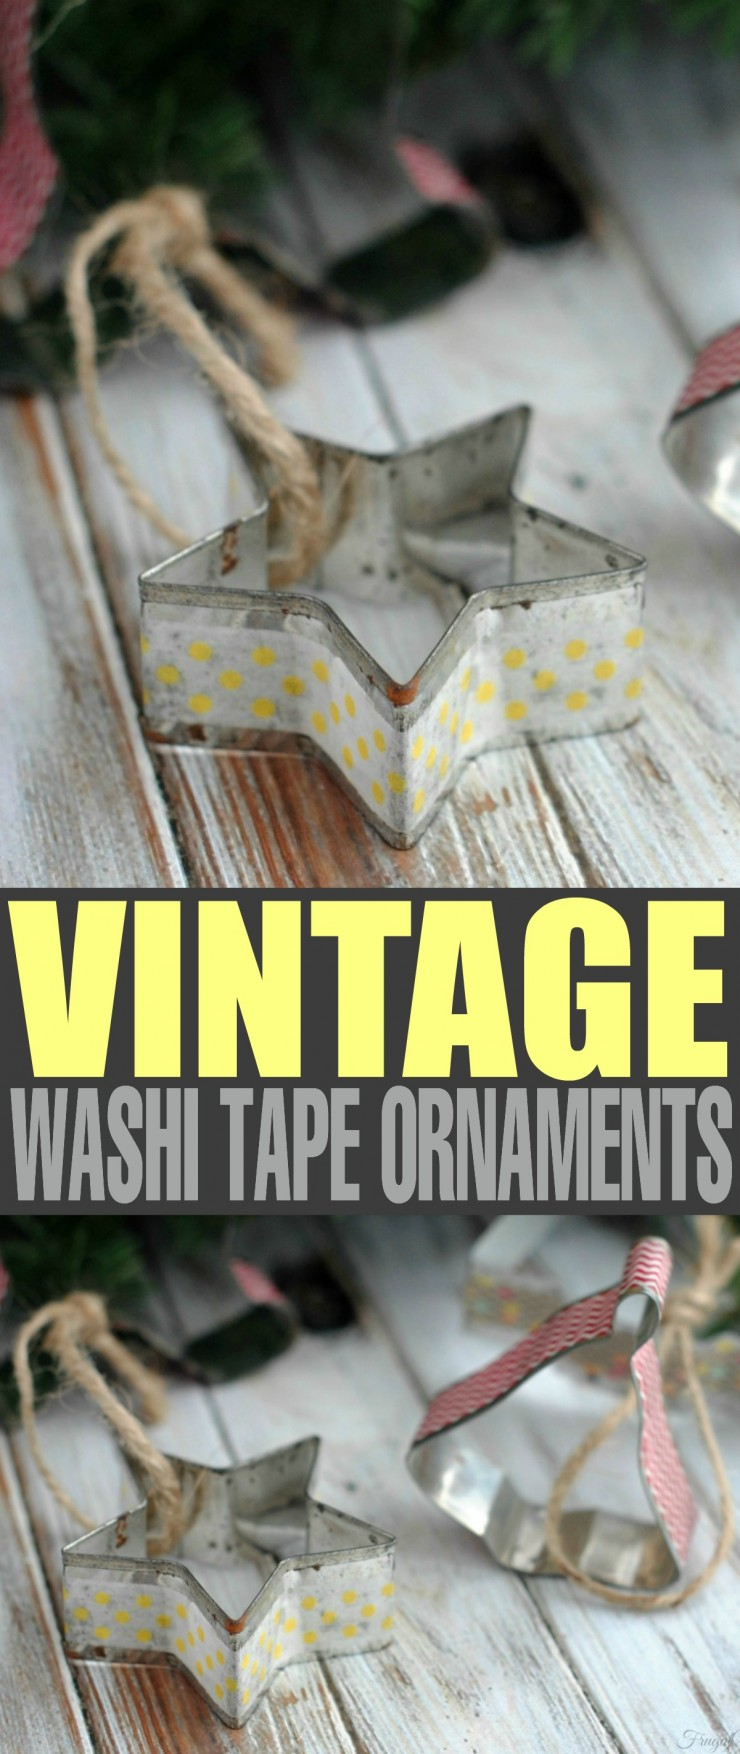 These Vintage Washi Tape Ornaments are a great diy Christmas idea. If you are looking for easy crafts with a tutorial check this out.